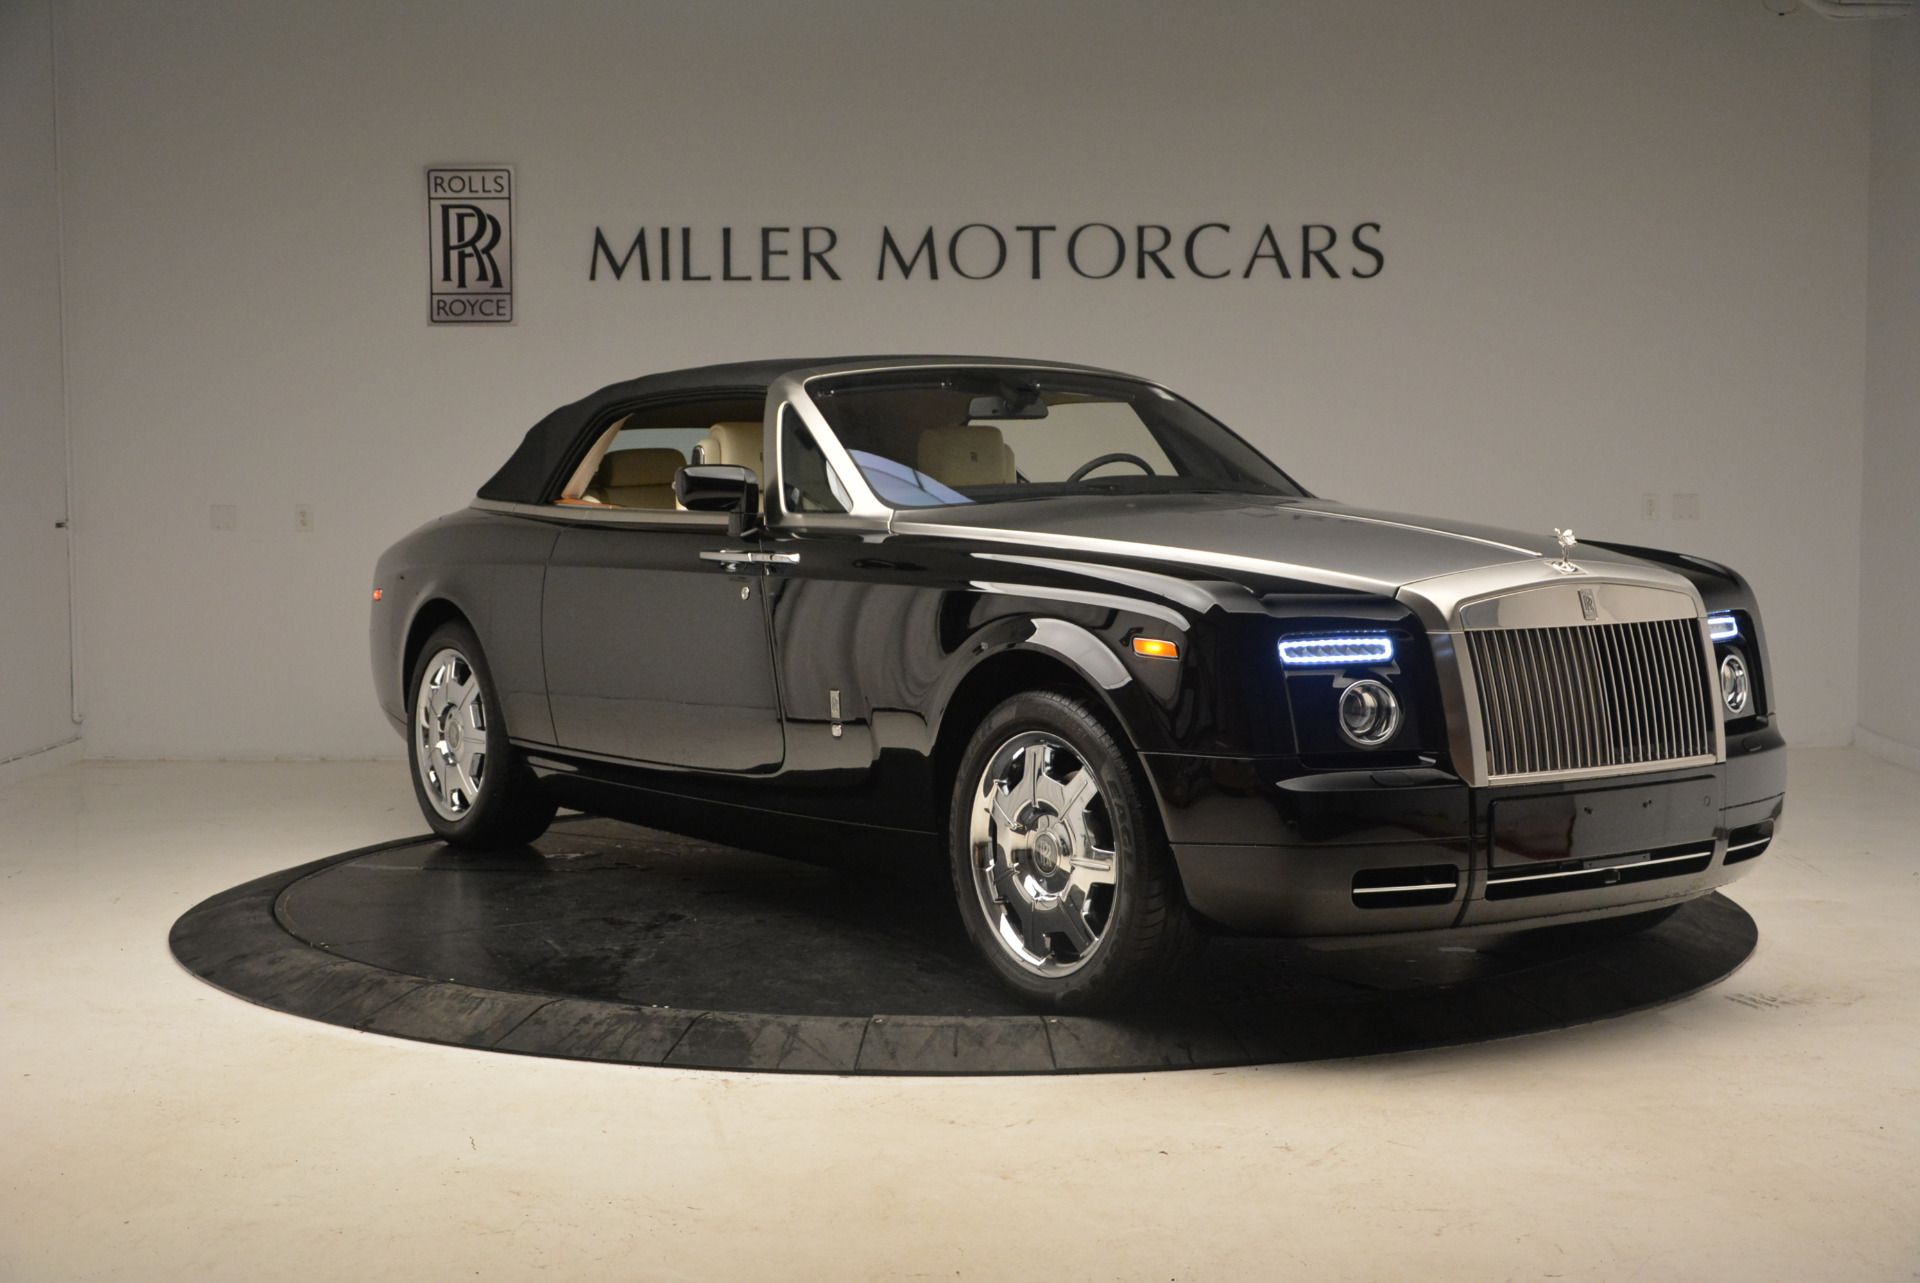 Used 2009 Rolls-Royce Phantom Drophead Coupe  For Sale In Westport, CT 1792_p24